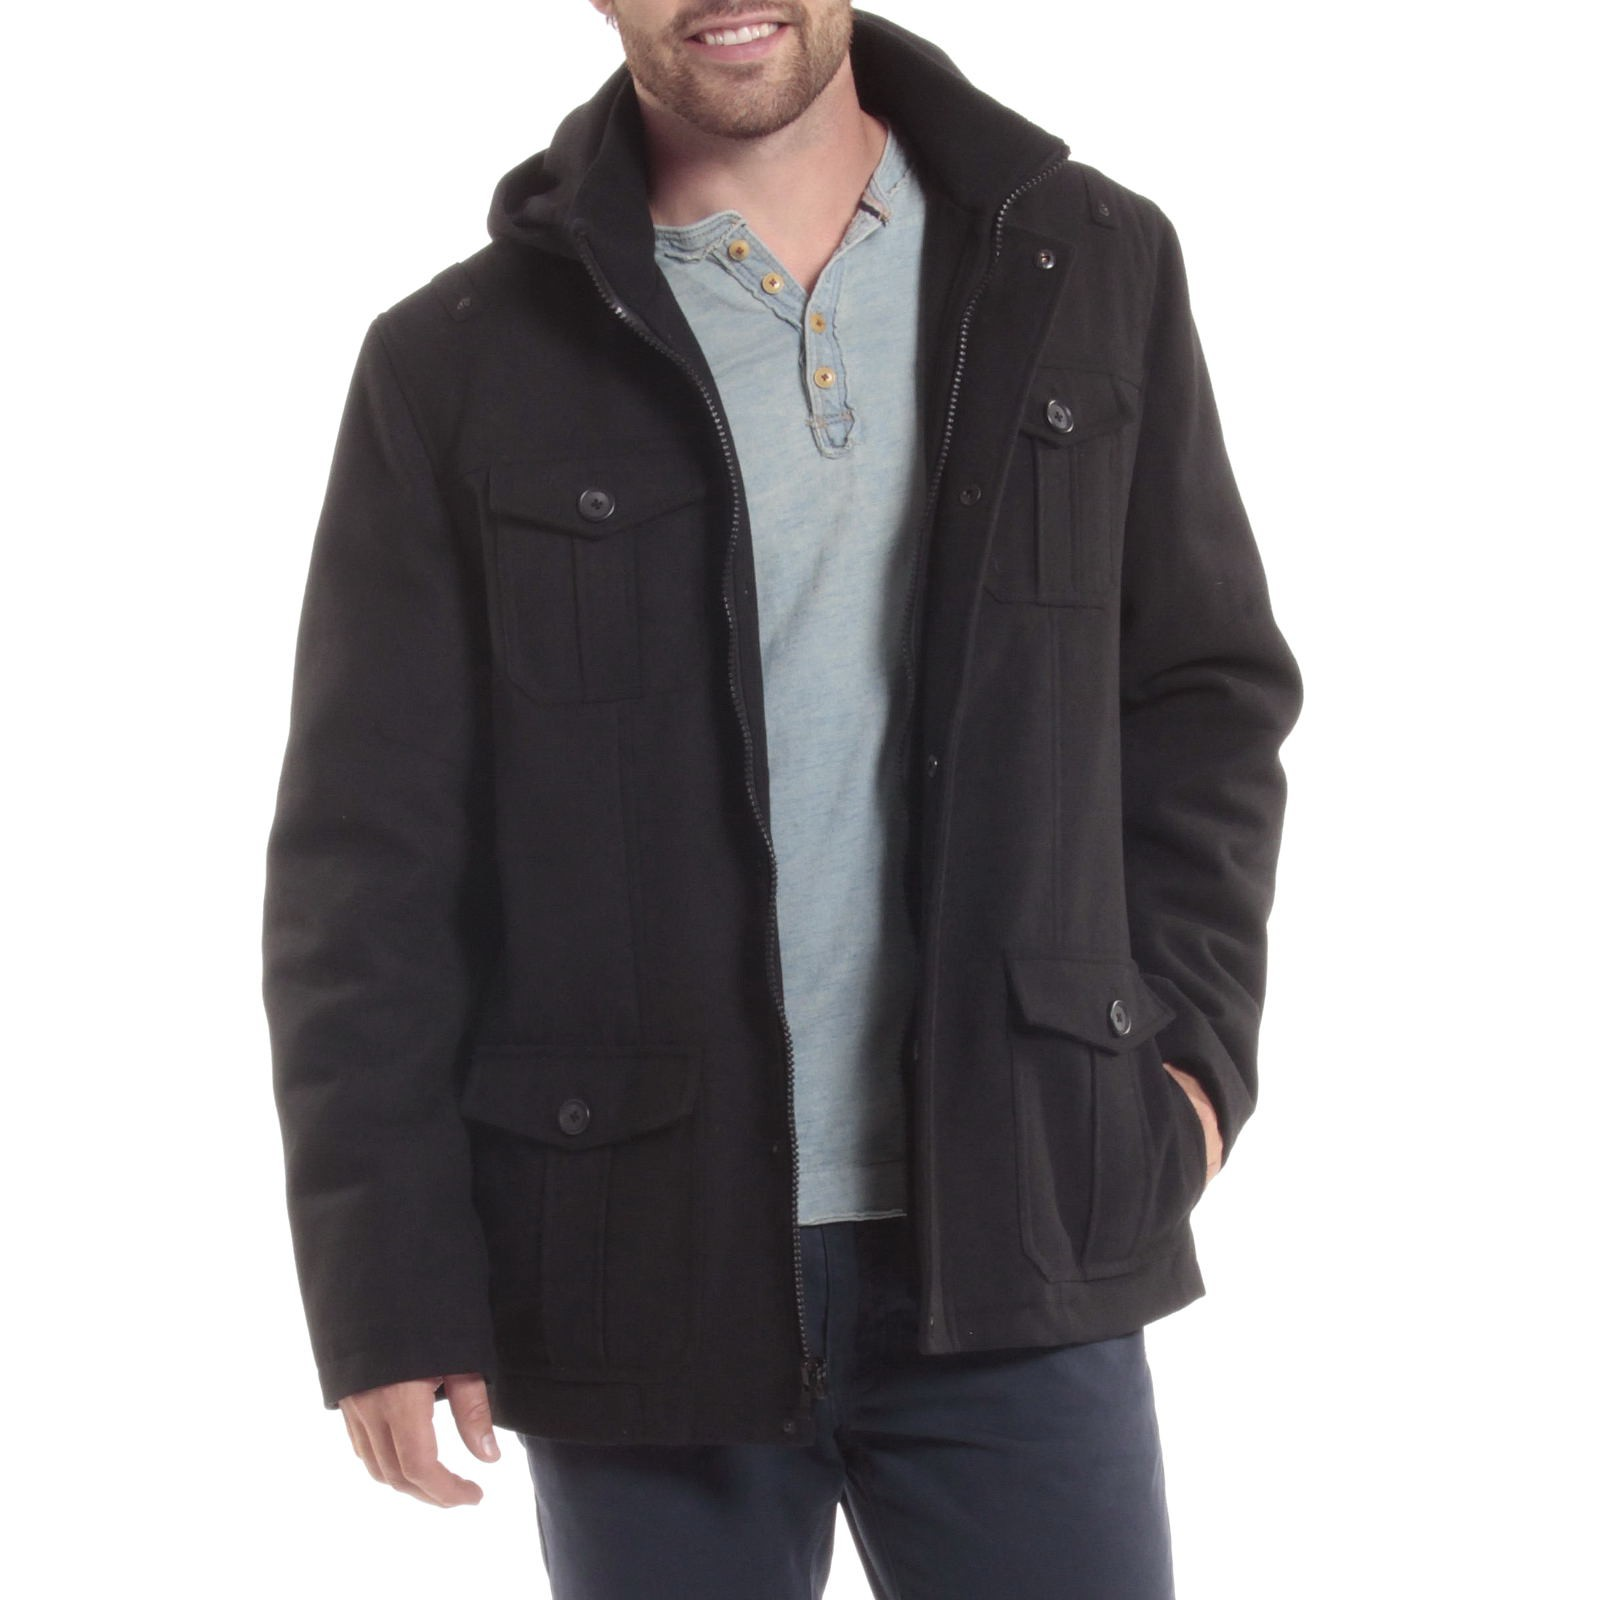 Alpine-Swiss-Noah-Mens-Wool-Coat-Parka-with-Removable-Hood-Jacket-Cargo-Pockets thumbnail 23